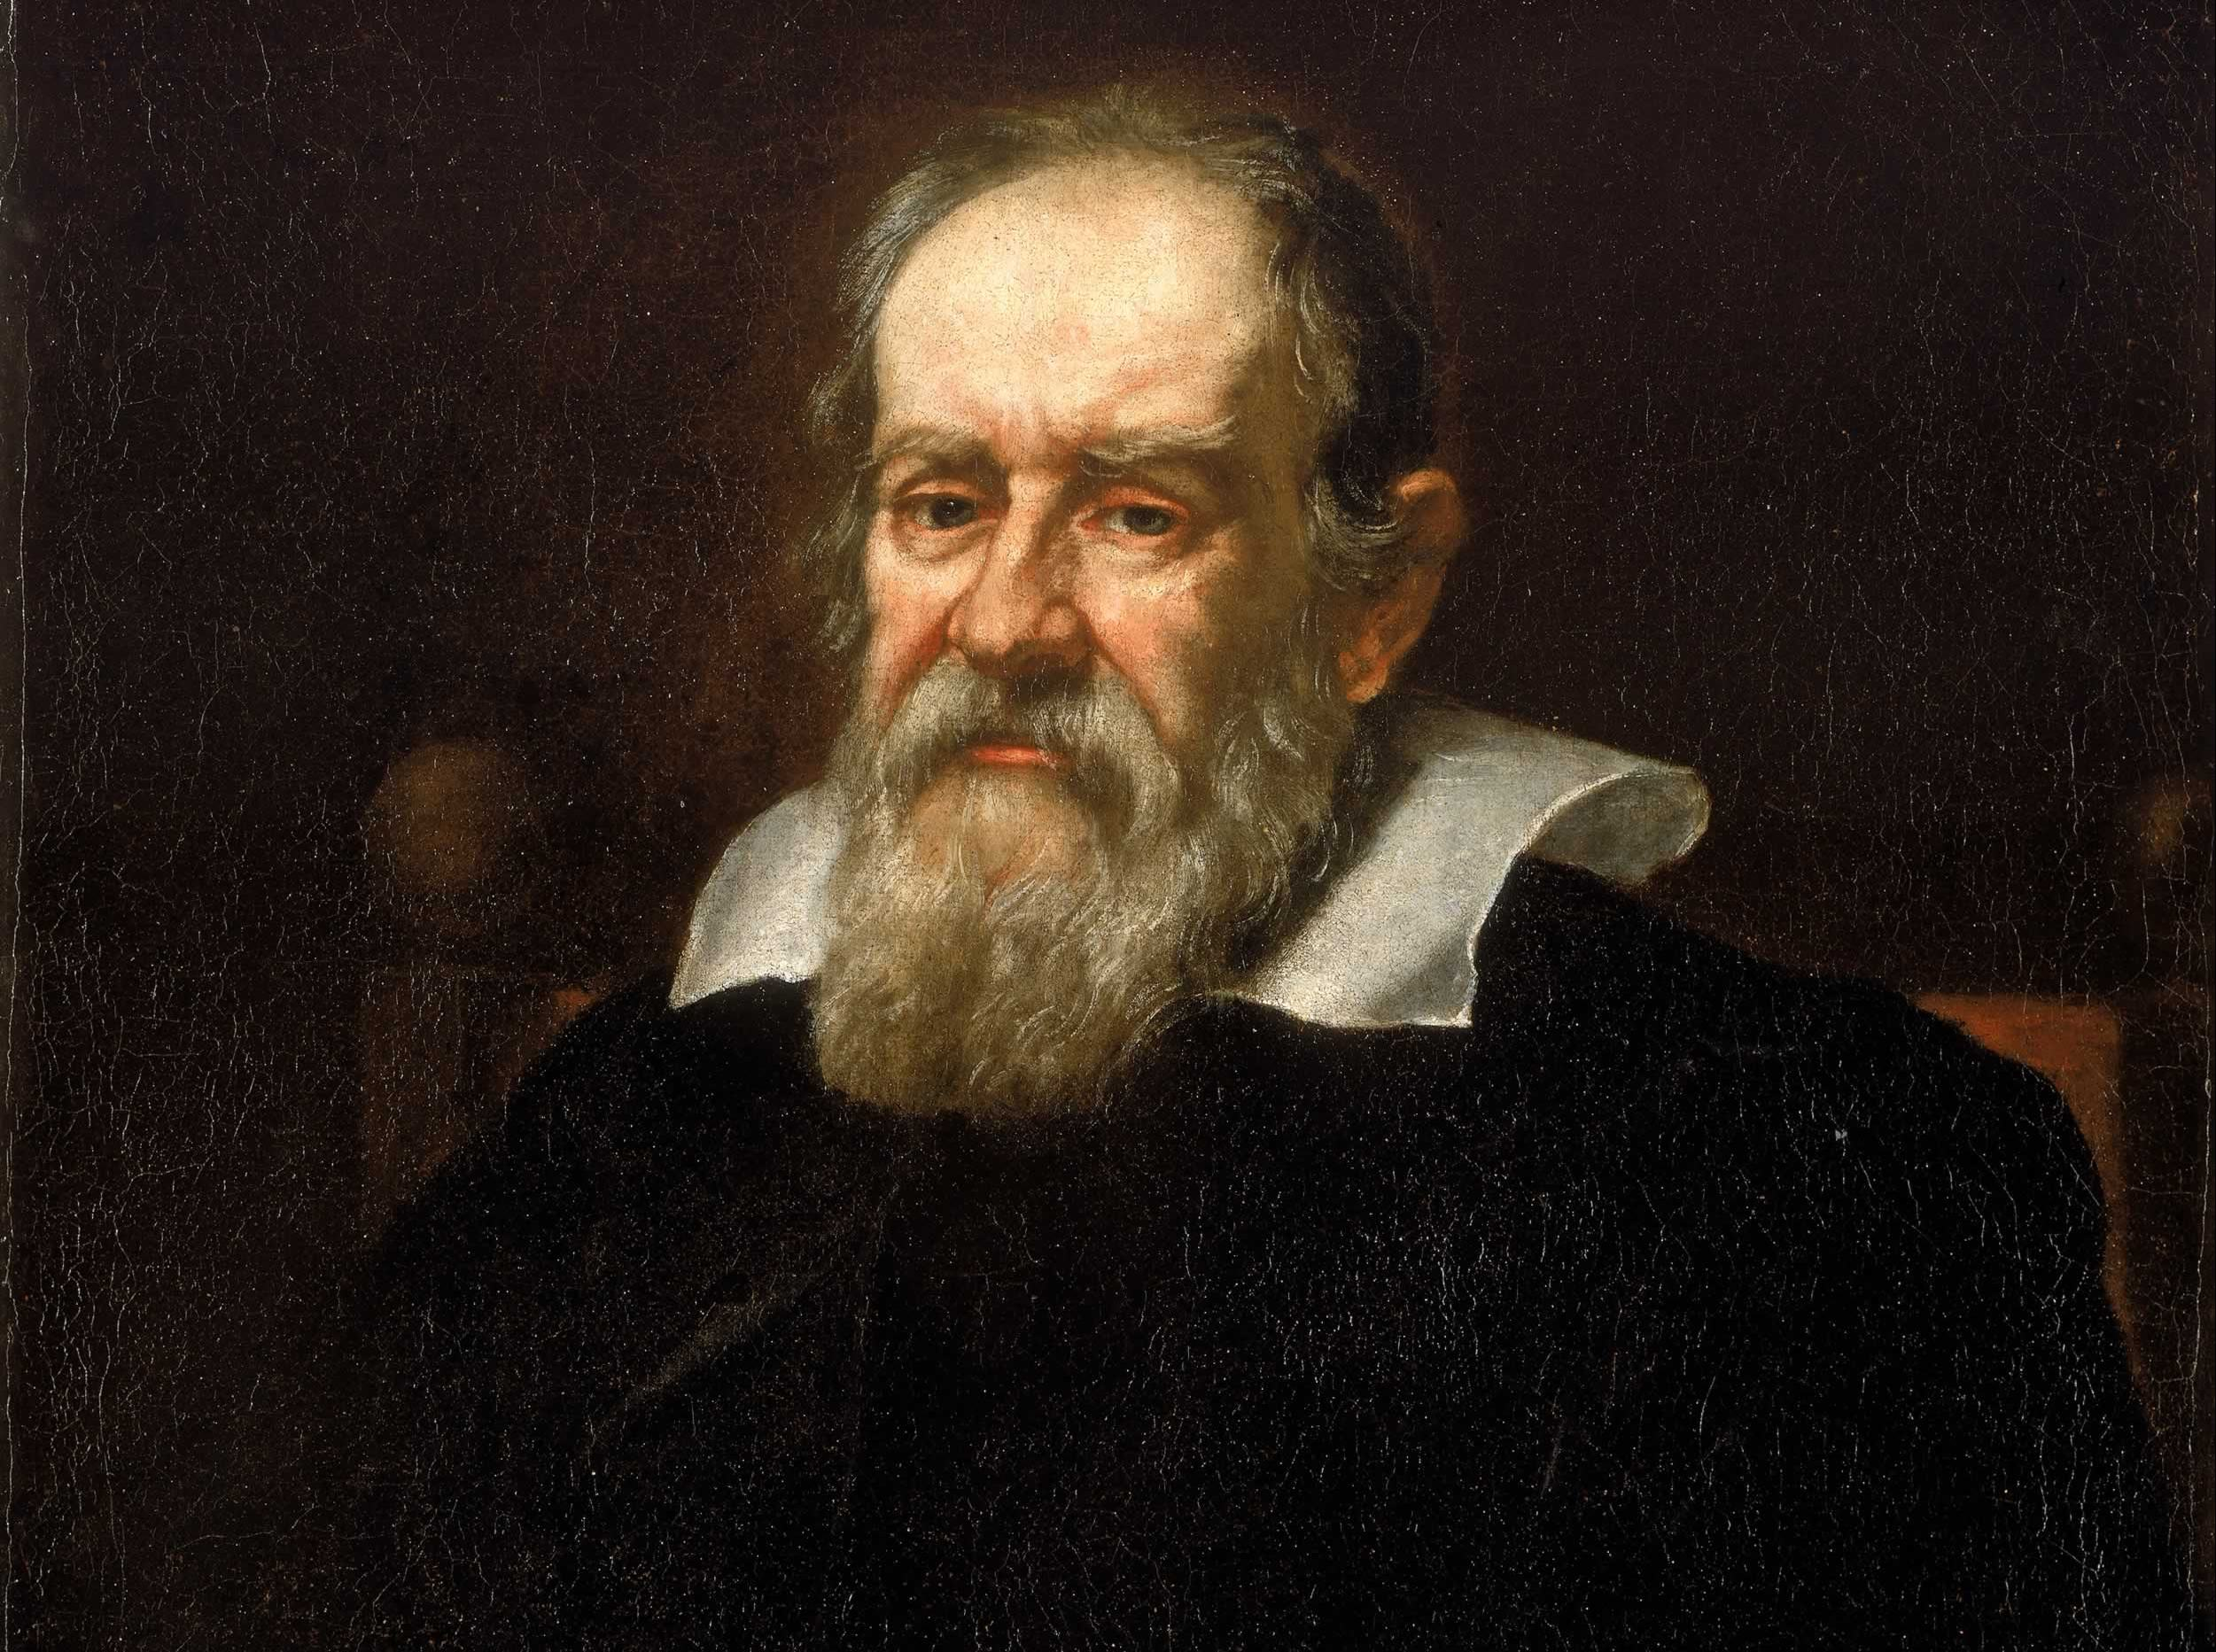 Portrait of Galileo Galilei by Giusto Sustermans (1636). Credit: nmm.ac.uk